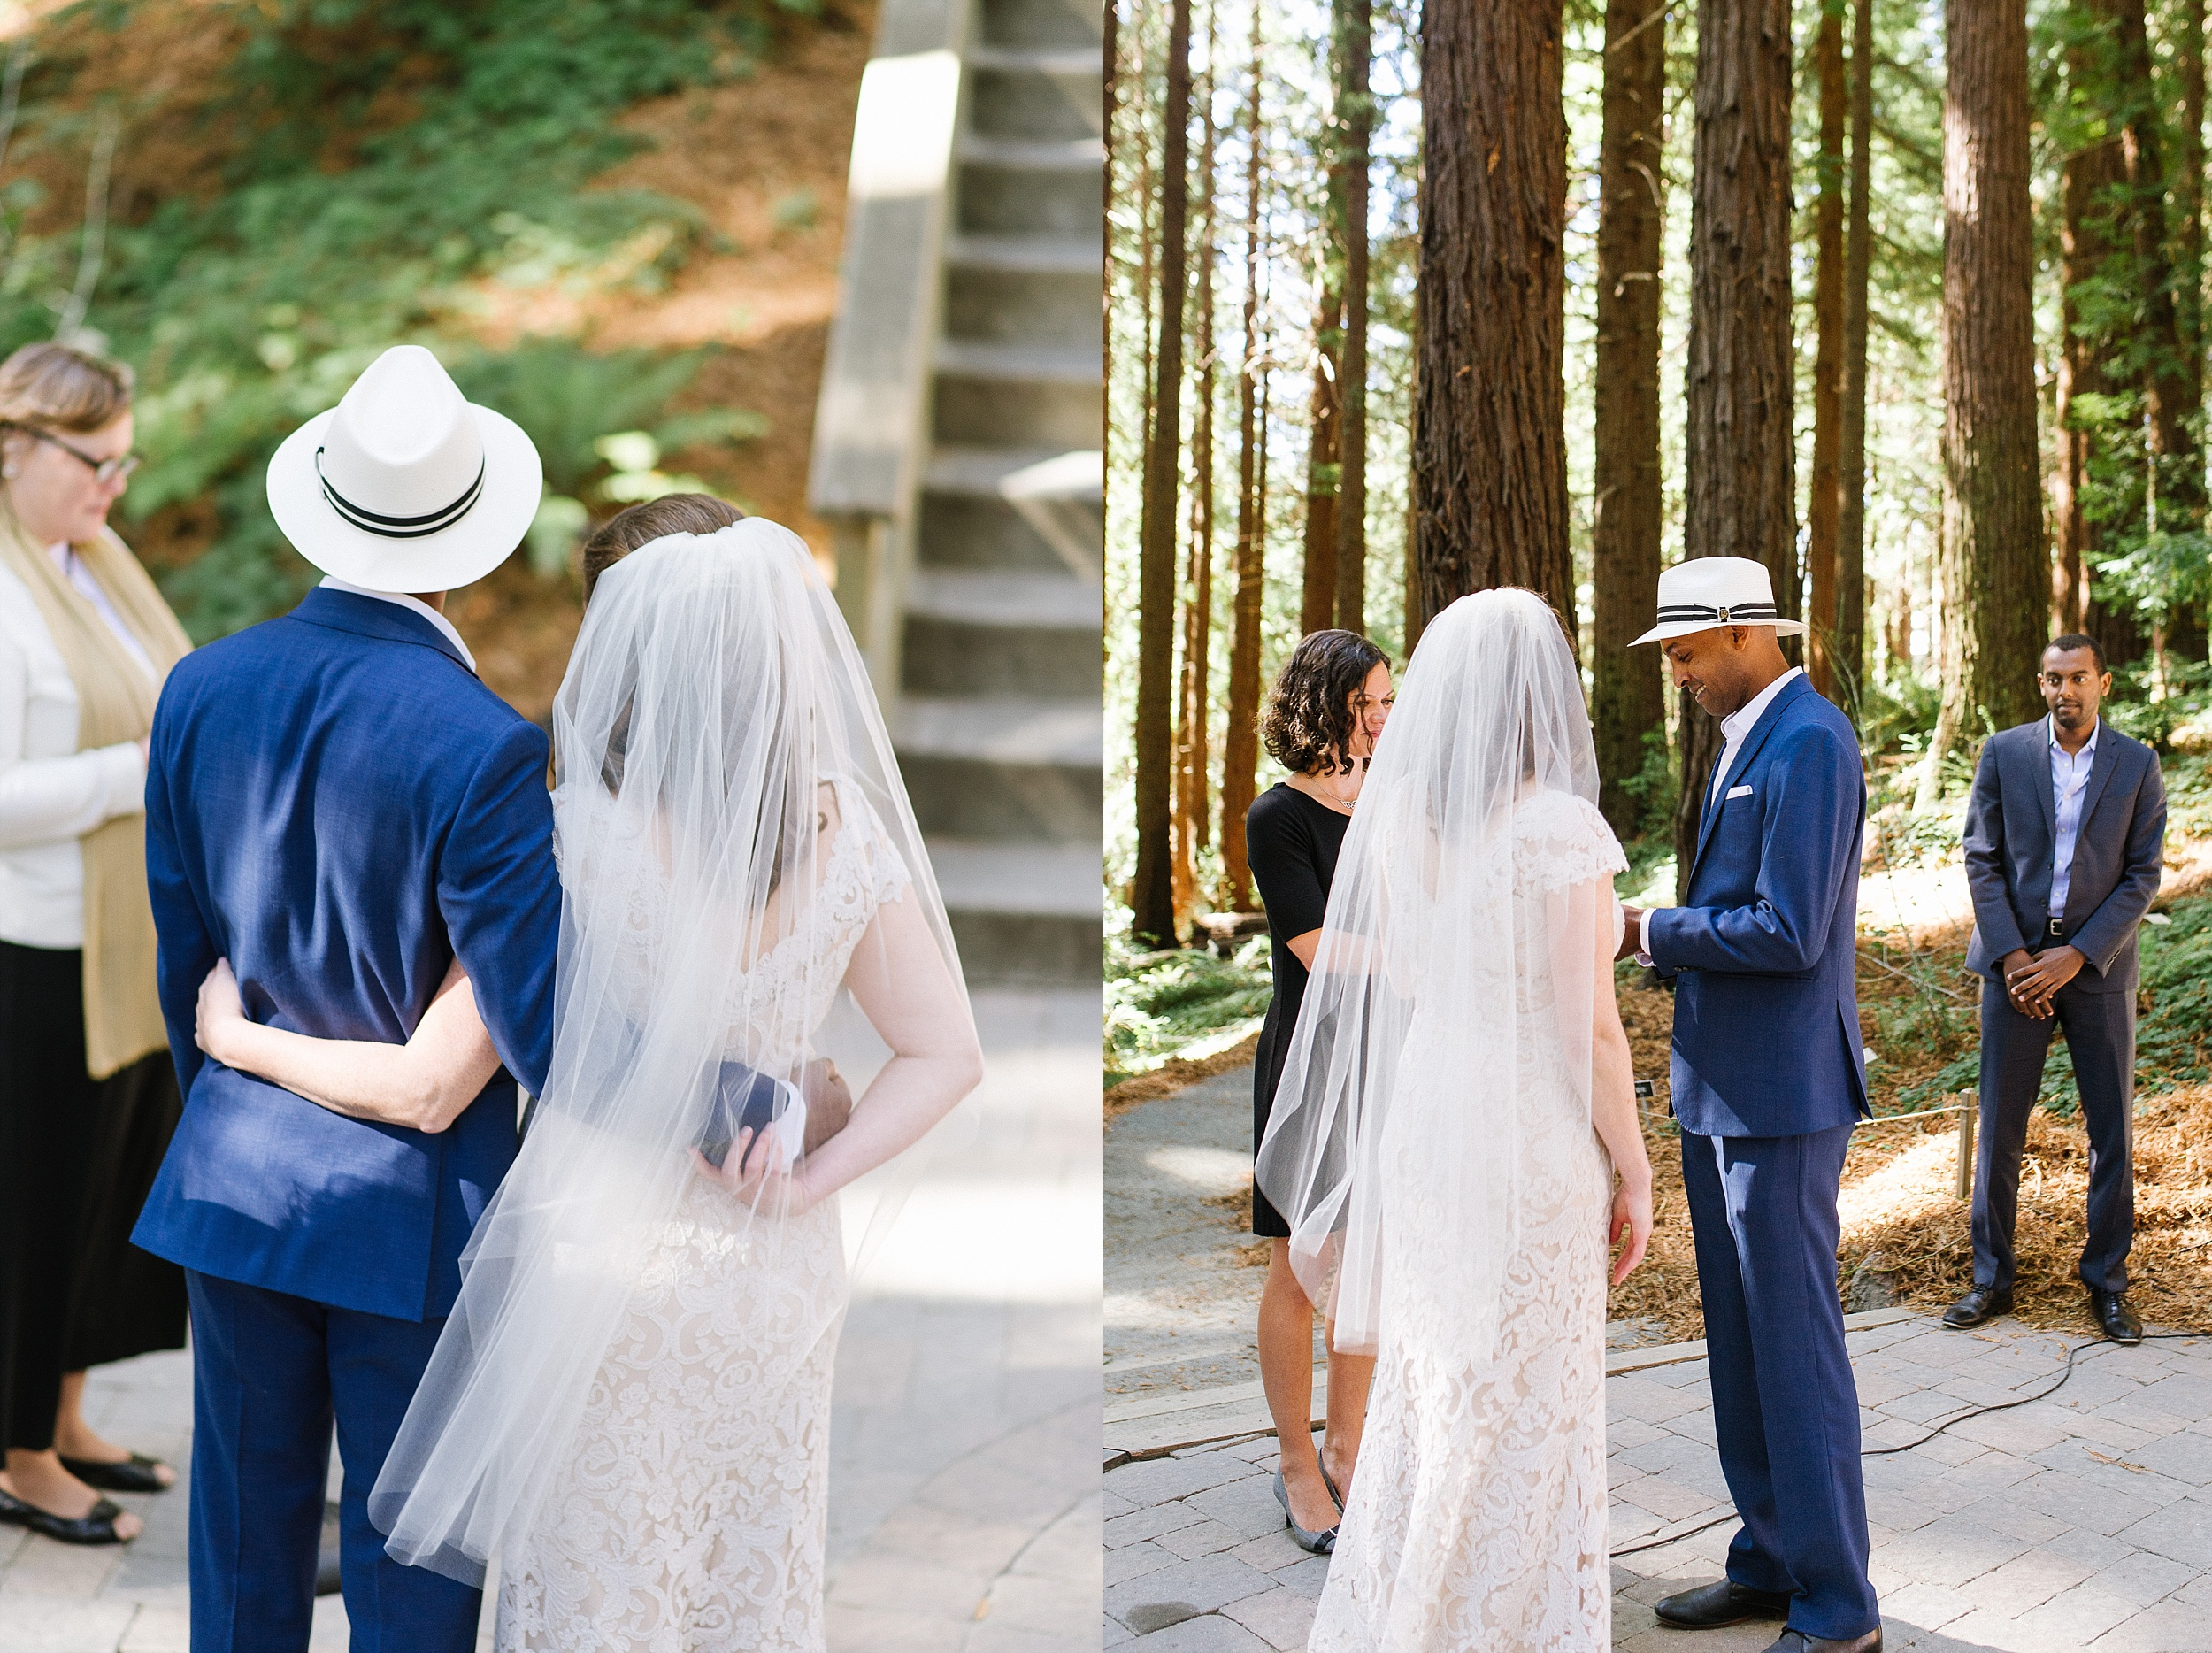 ucberkeley_botanical_redwoods_outdoor_wedding_jennyrez_cdp_0014.jpg